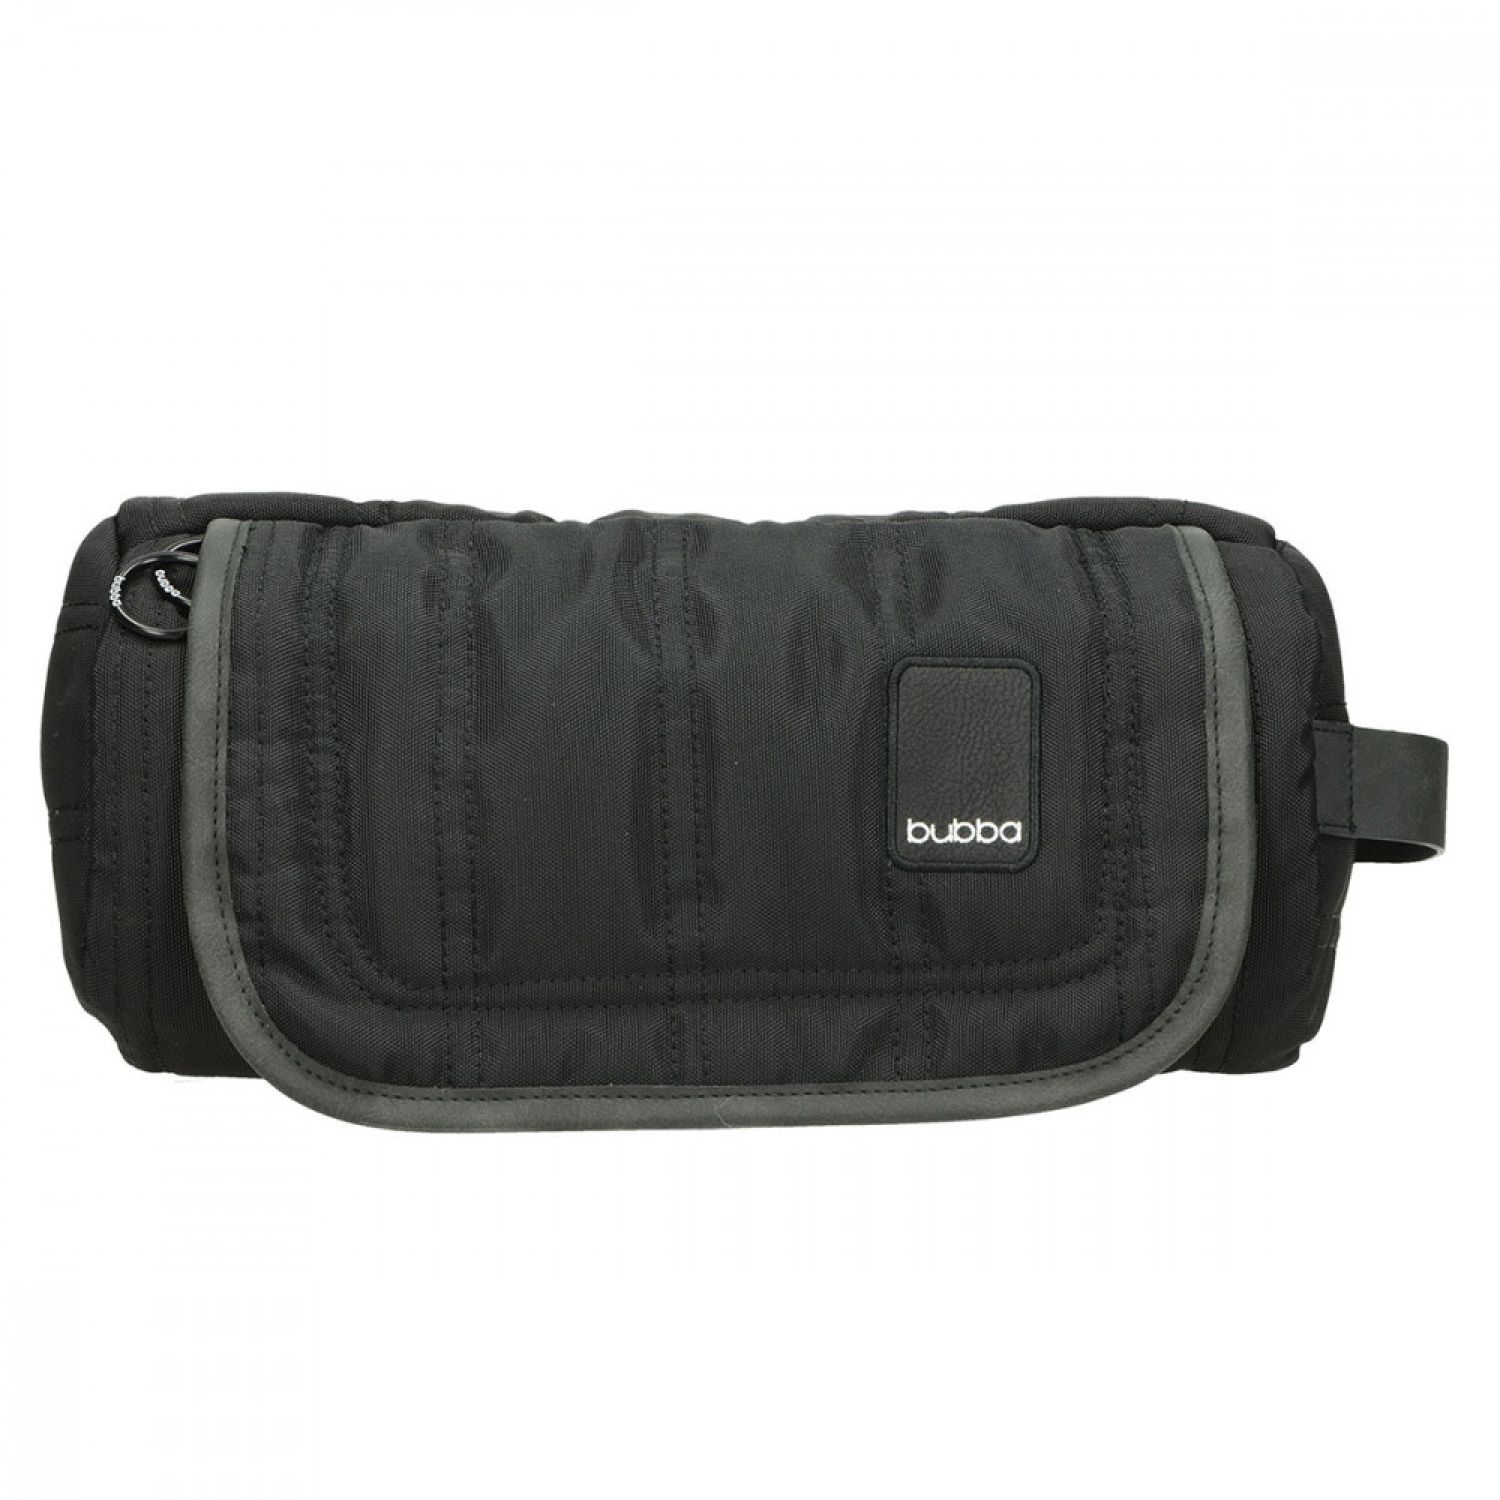 BUBBA BAGS Carry Bag Montreal Negro Cosmetiqueras